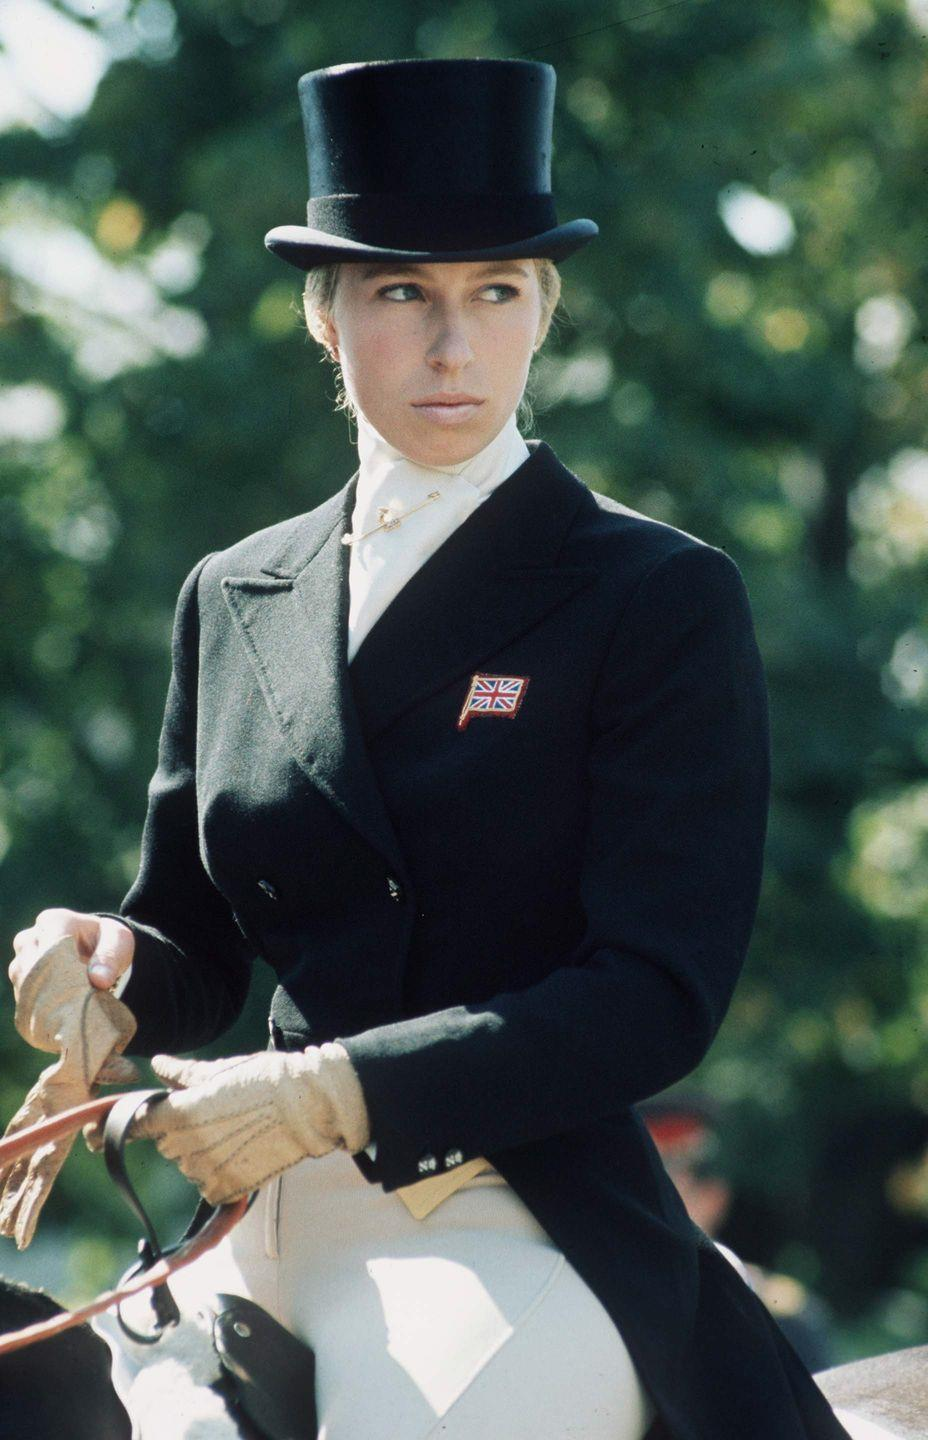 <p>Earlier generations of anglophiles and fans of the British monarchy know Princess Anne for her illustrious career as an equestrian. The princess and her father shared a love affair with horses, and she began competing at the age of 11.</p><p>In 1971, At the age of 21, Princess Anne became a European gold medal winner at the September 1971 European Eventing Championships, and subsequently BBC's Sports Personality of the Year. The following year, she became the first British royal to be selected to the Olympic team—and she was selected for the following Olympic Games in 1976. </p>